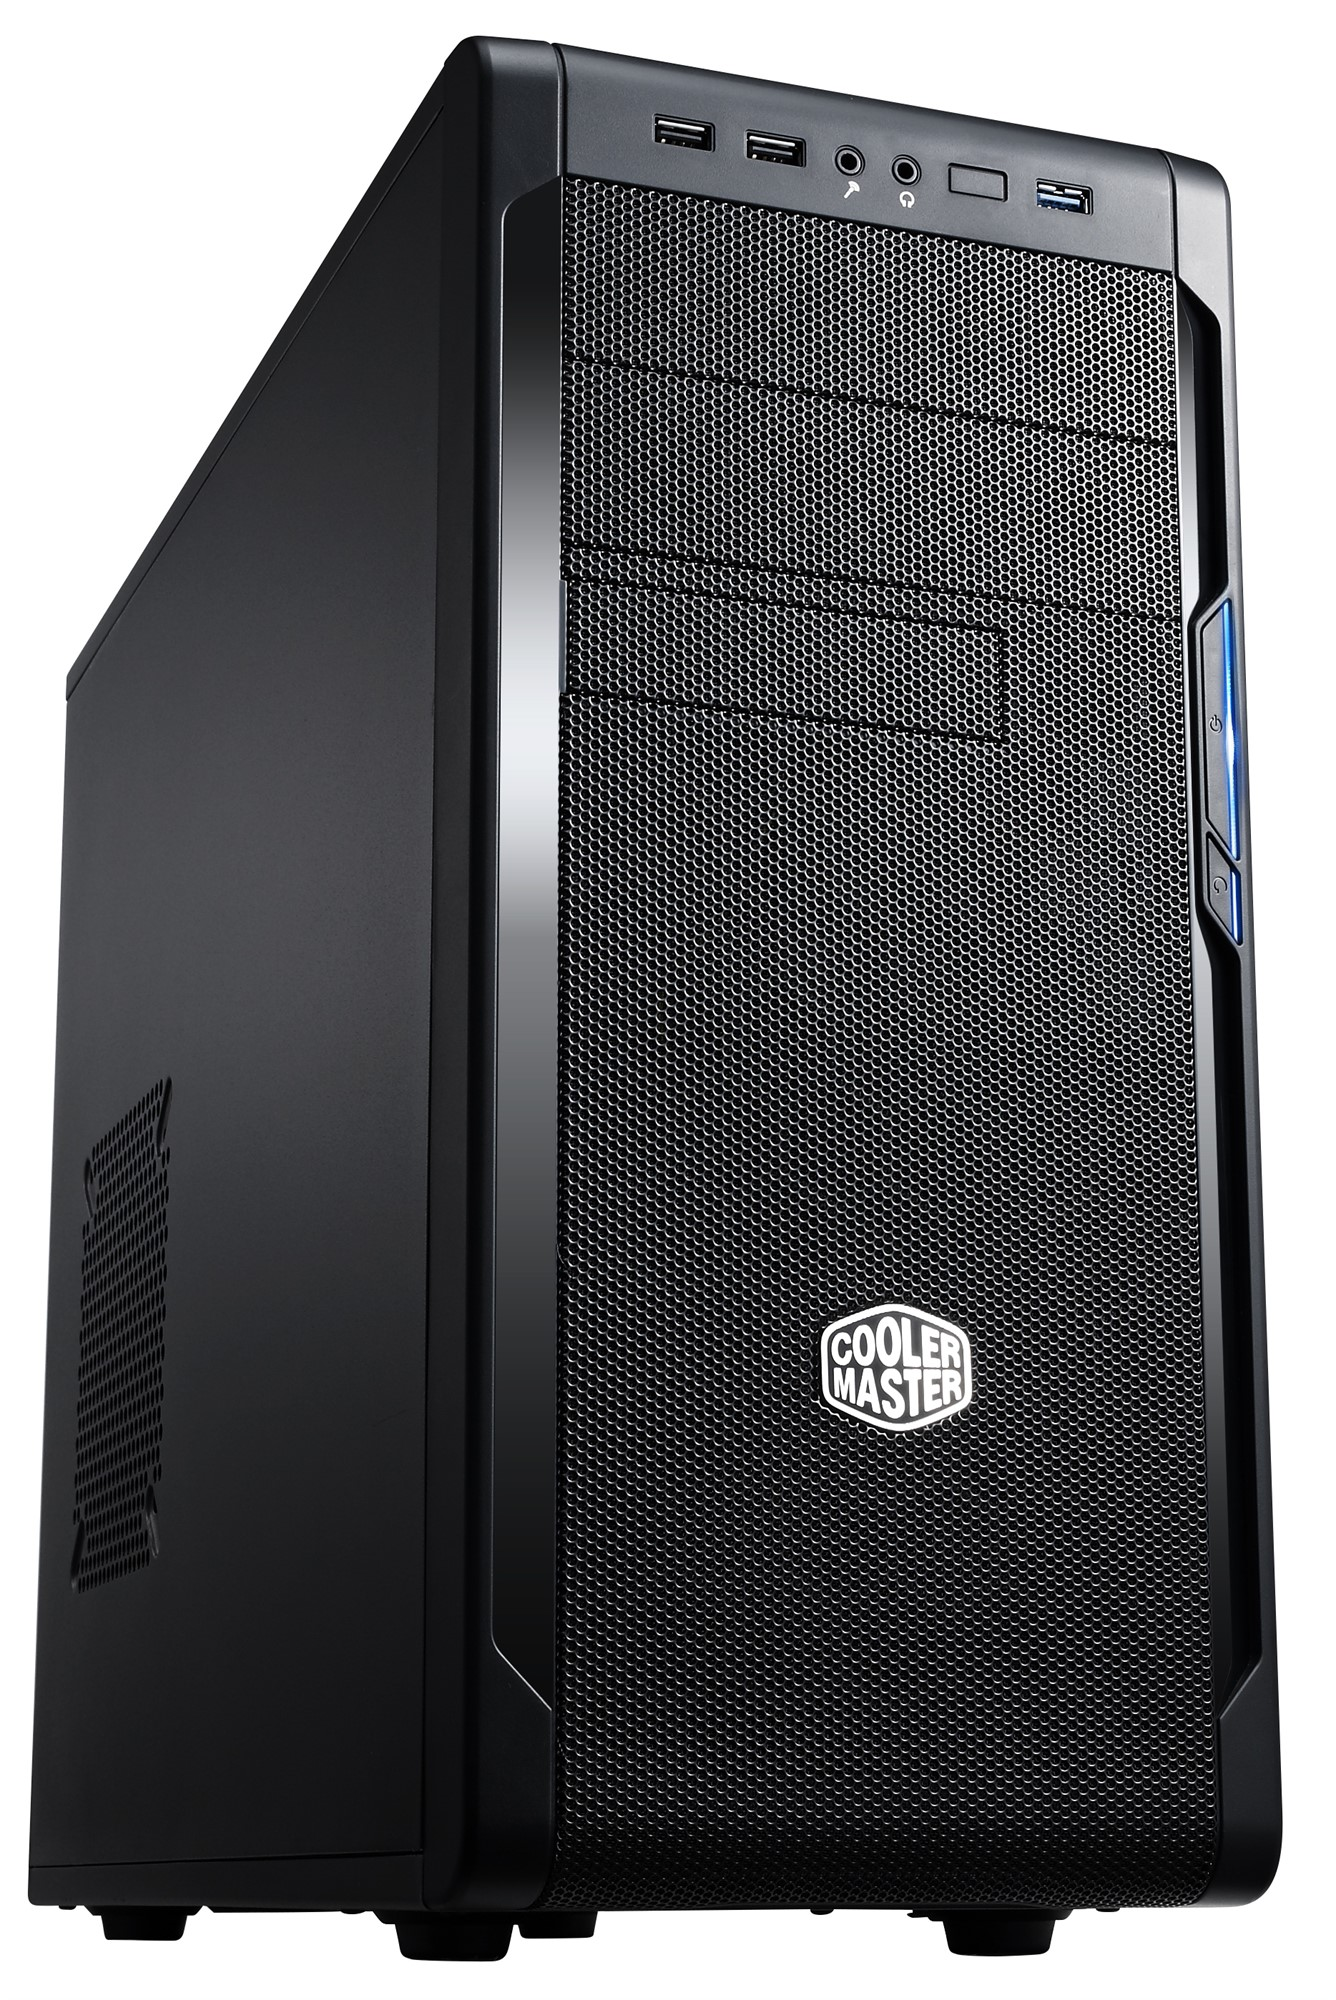 COOLER MASTER NSE-300-KKN1 N300 MIDI-TOWER BLACK COMPUTER CASE